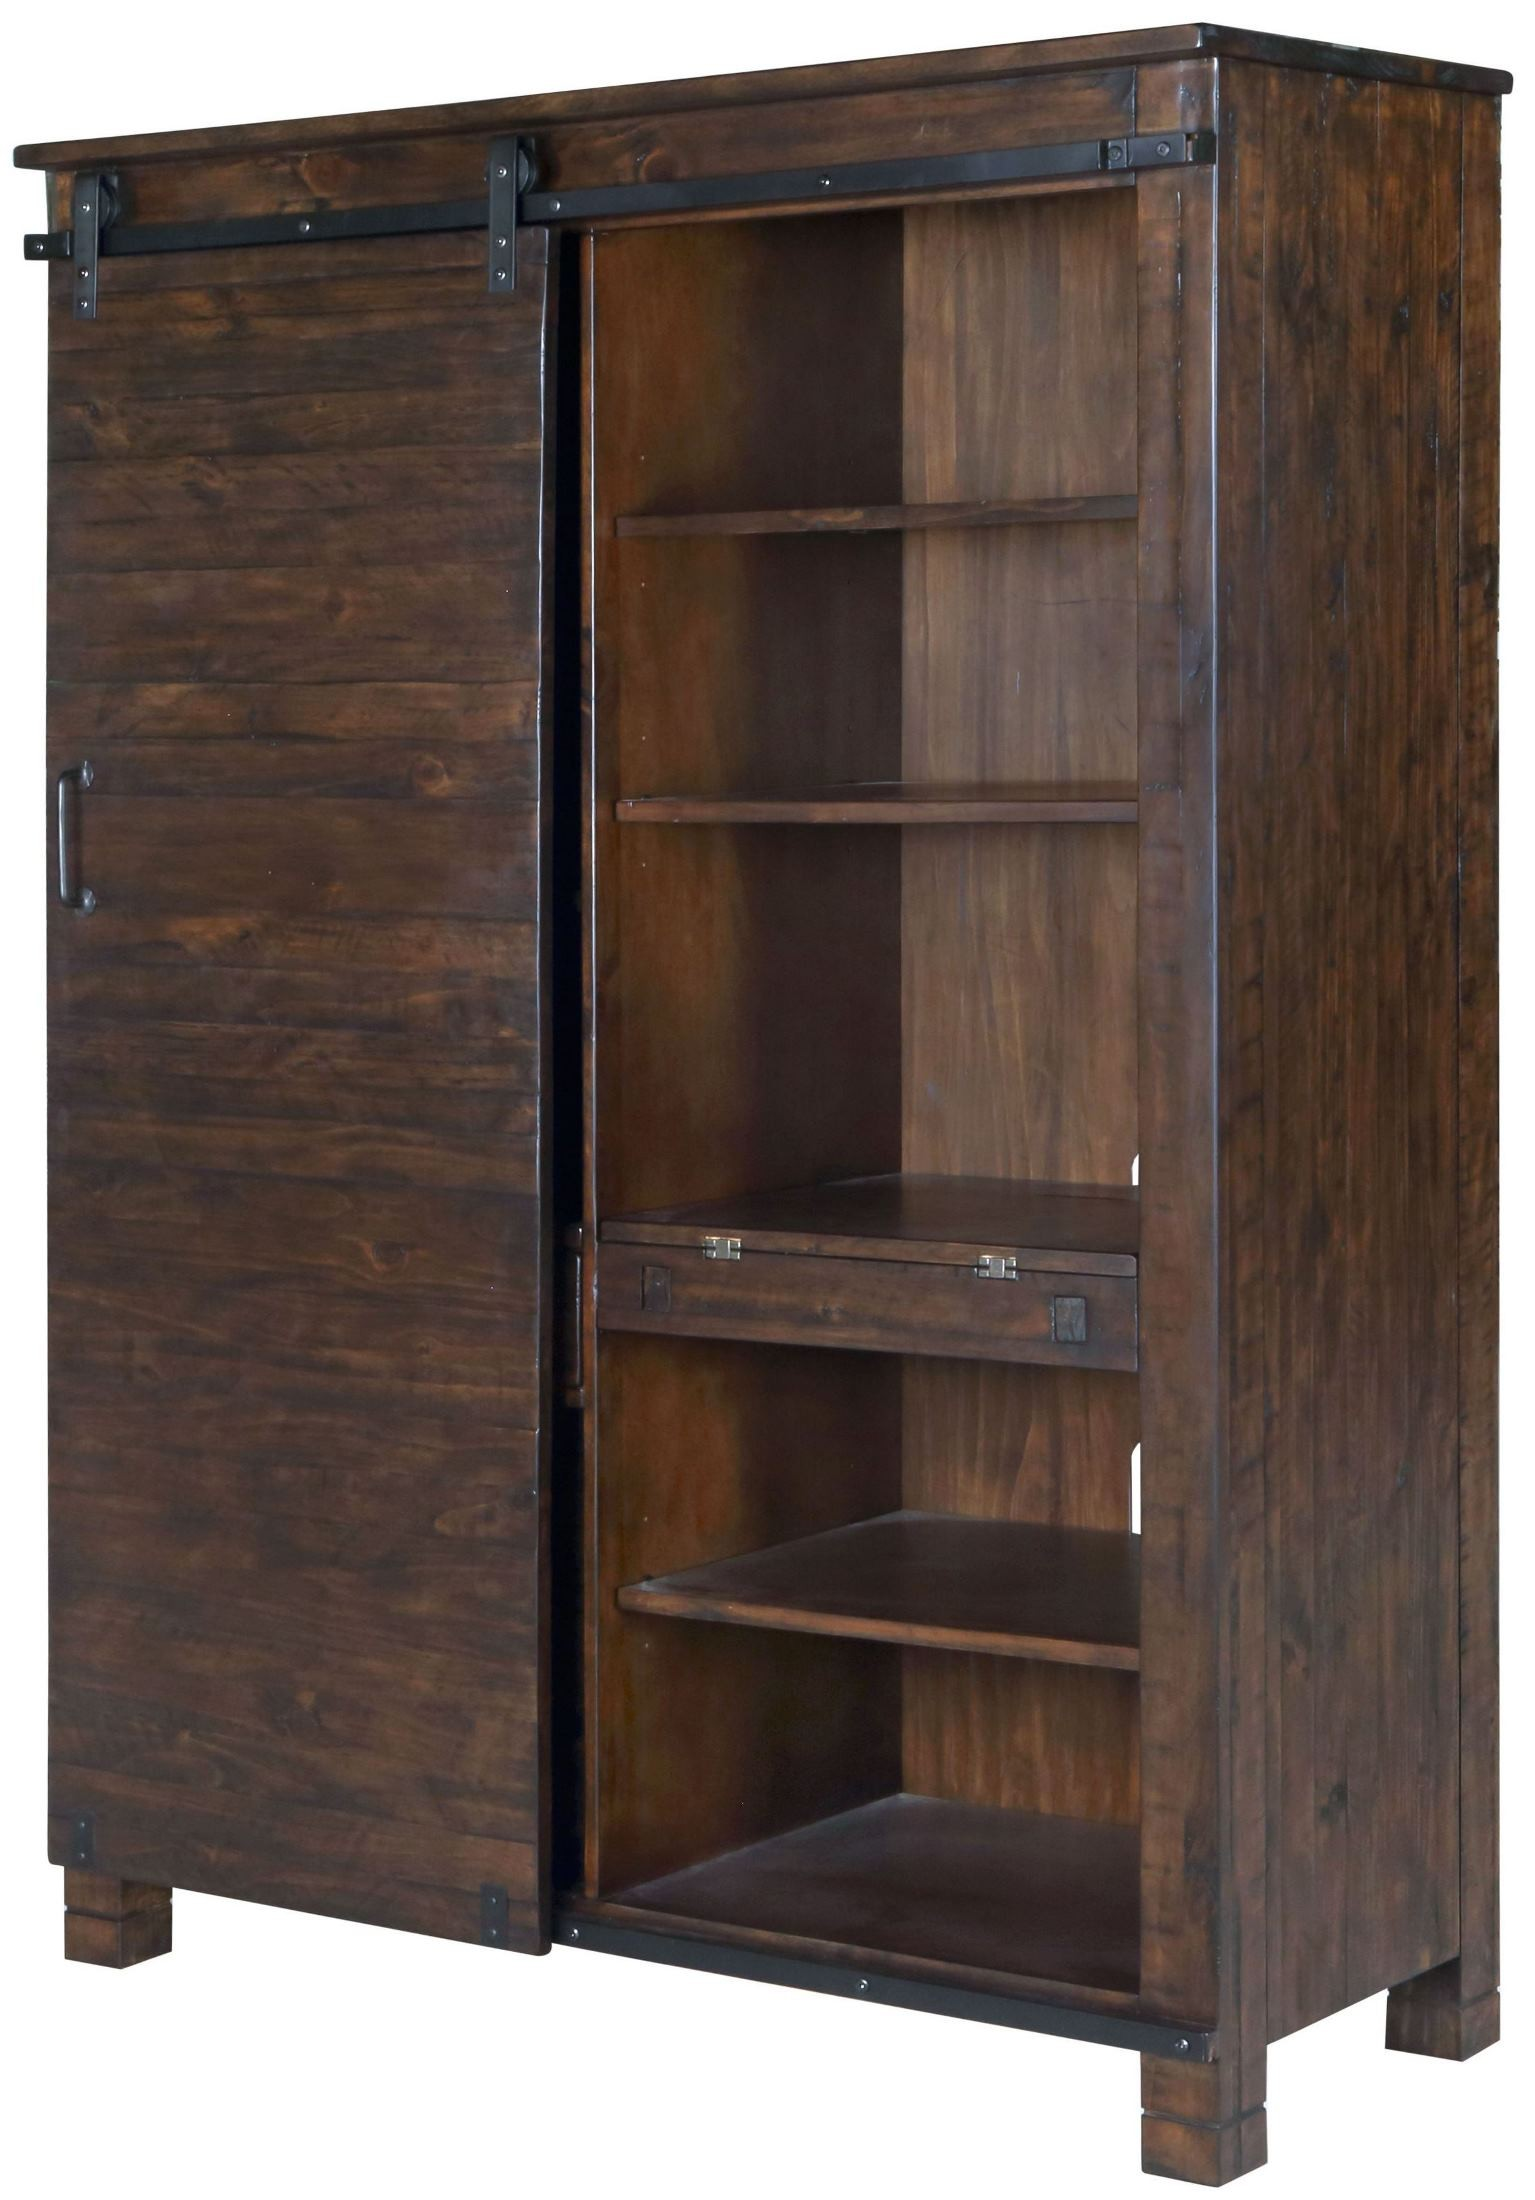 Pine Hill Rustic Pine Door Bookcase From Magnussen Home